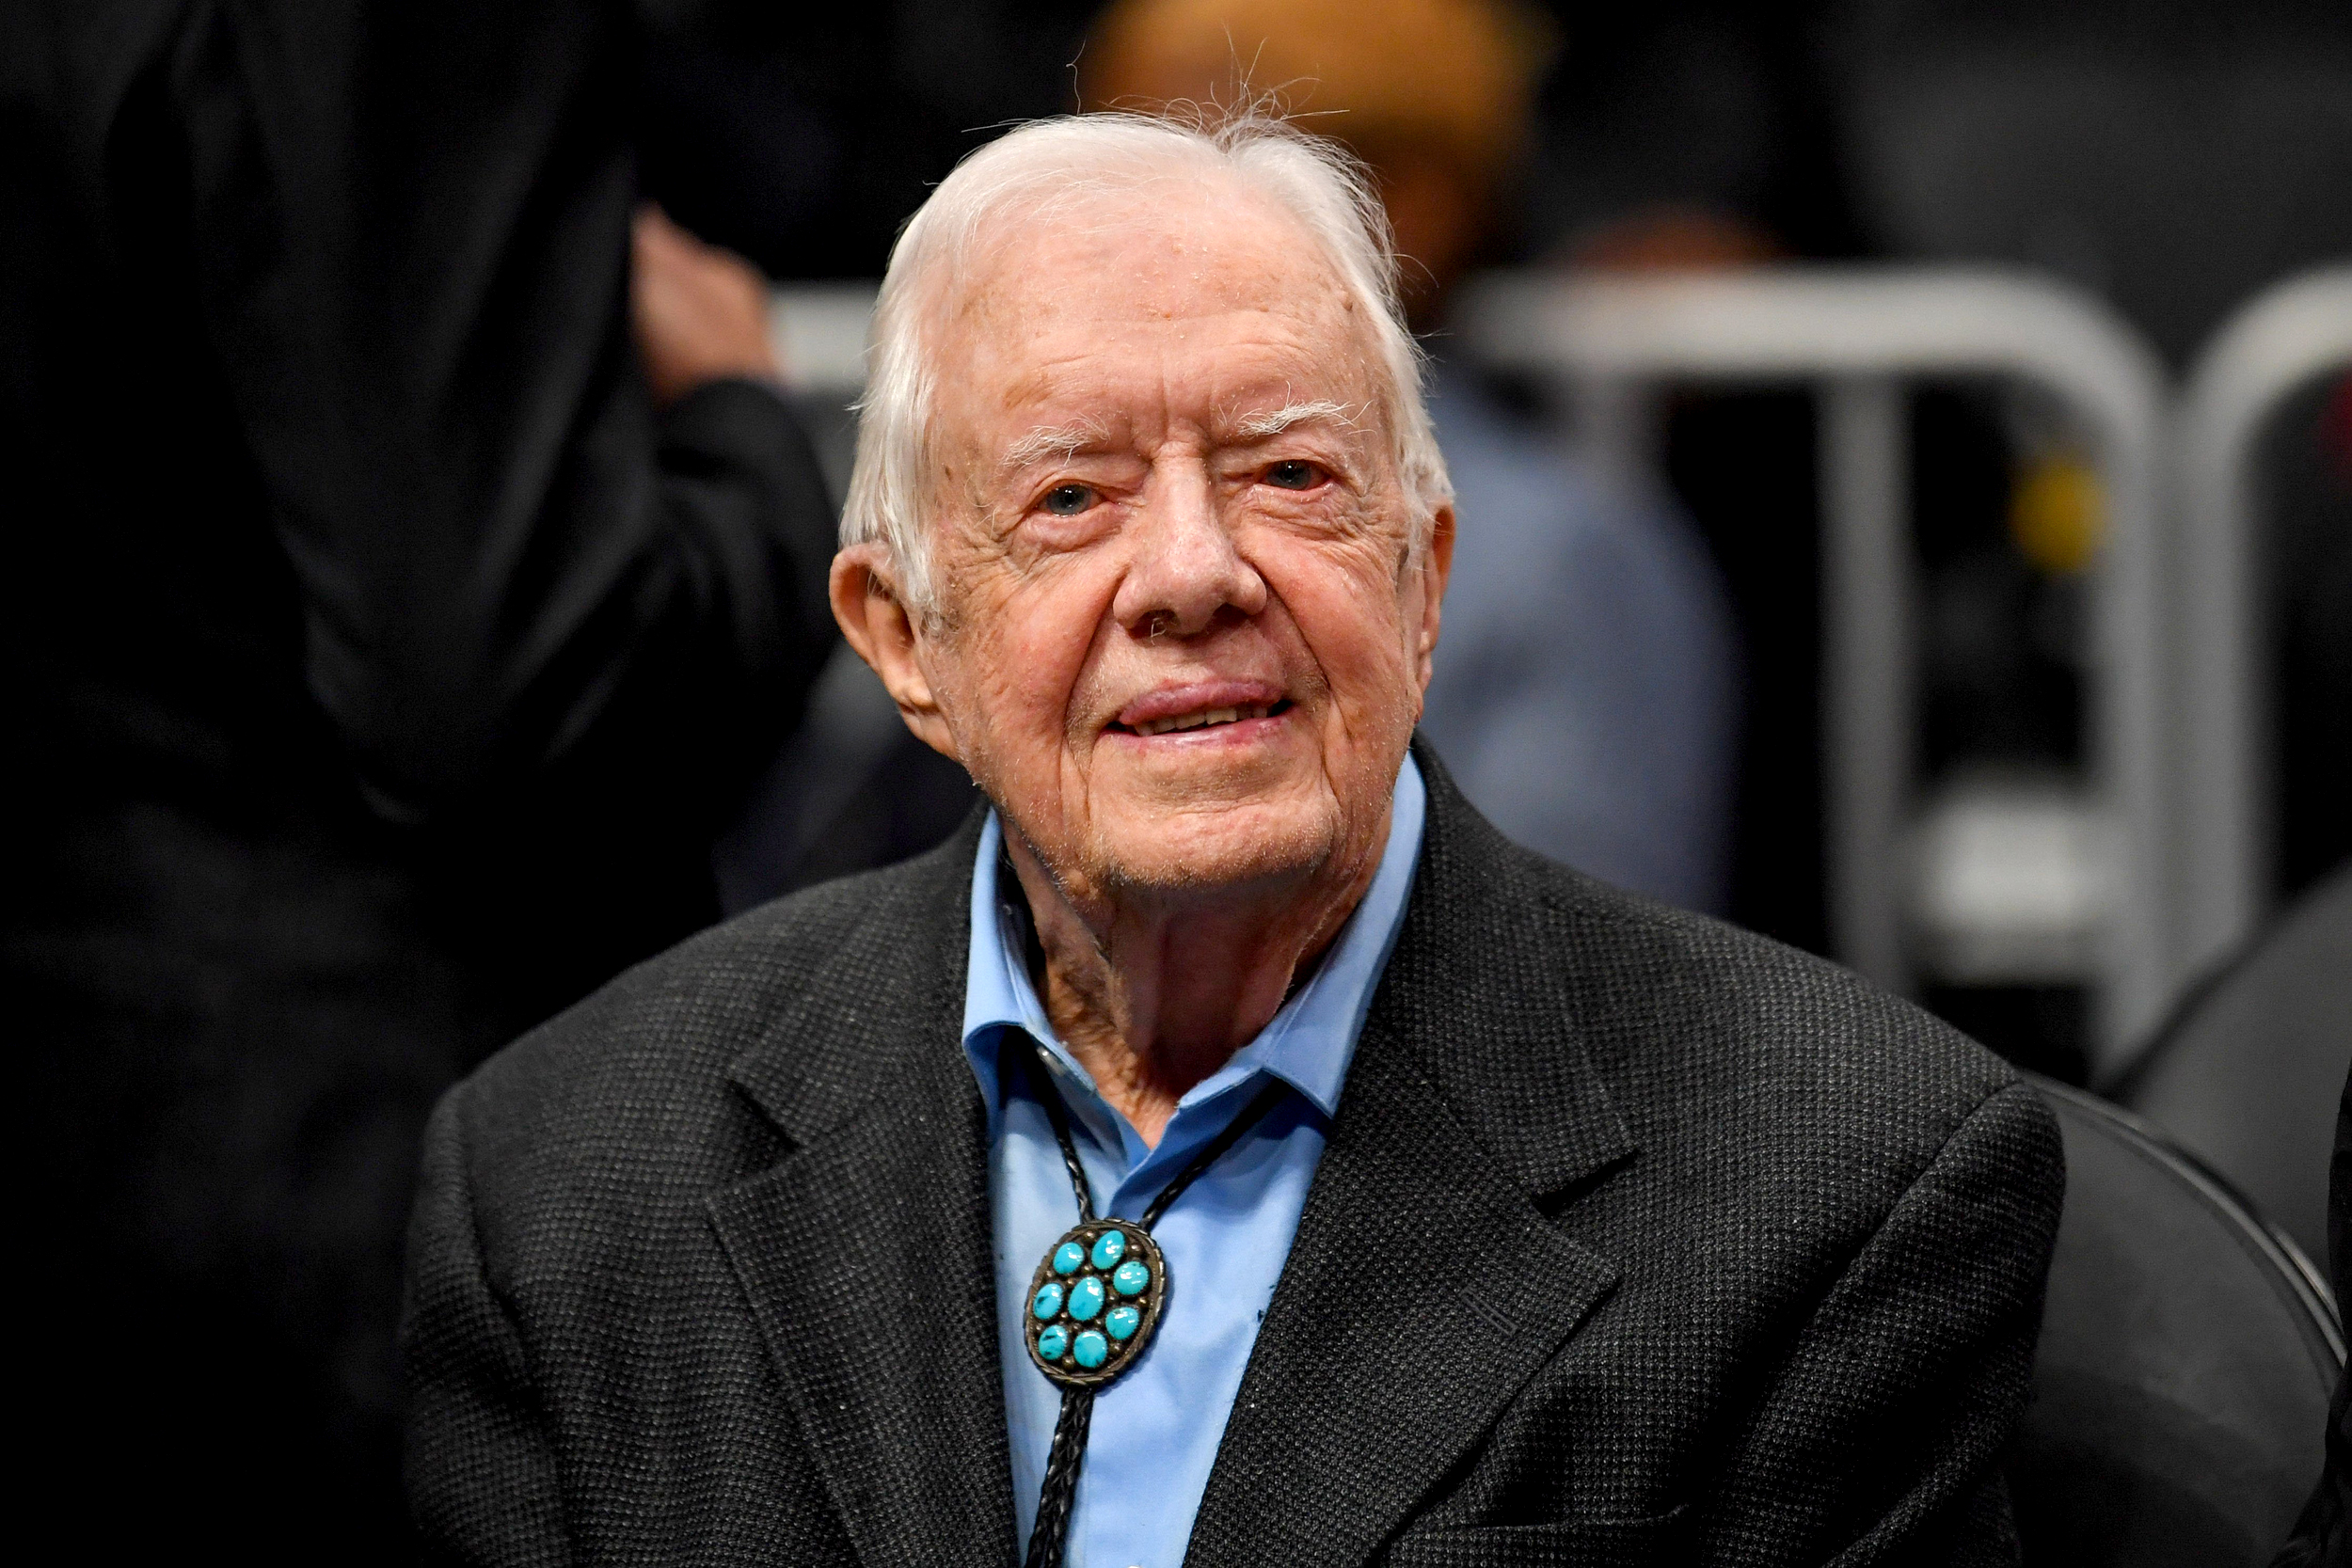 Former President Jimmy Carter quietly marks 97th birthday